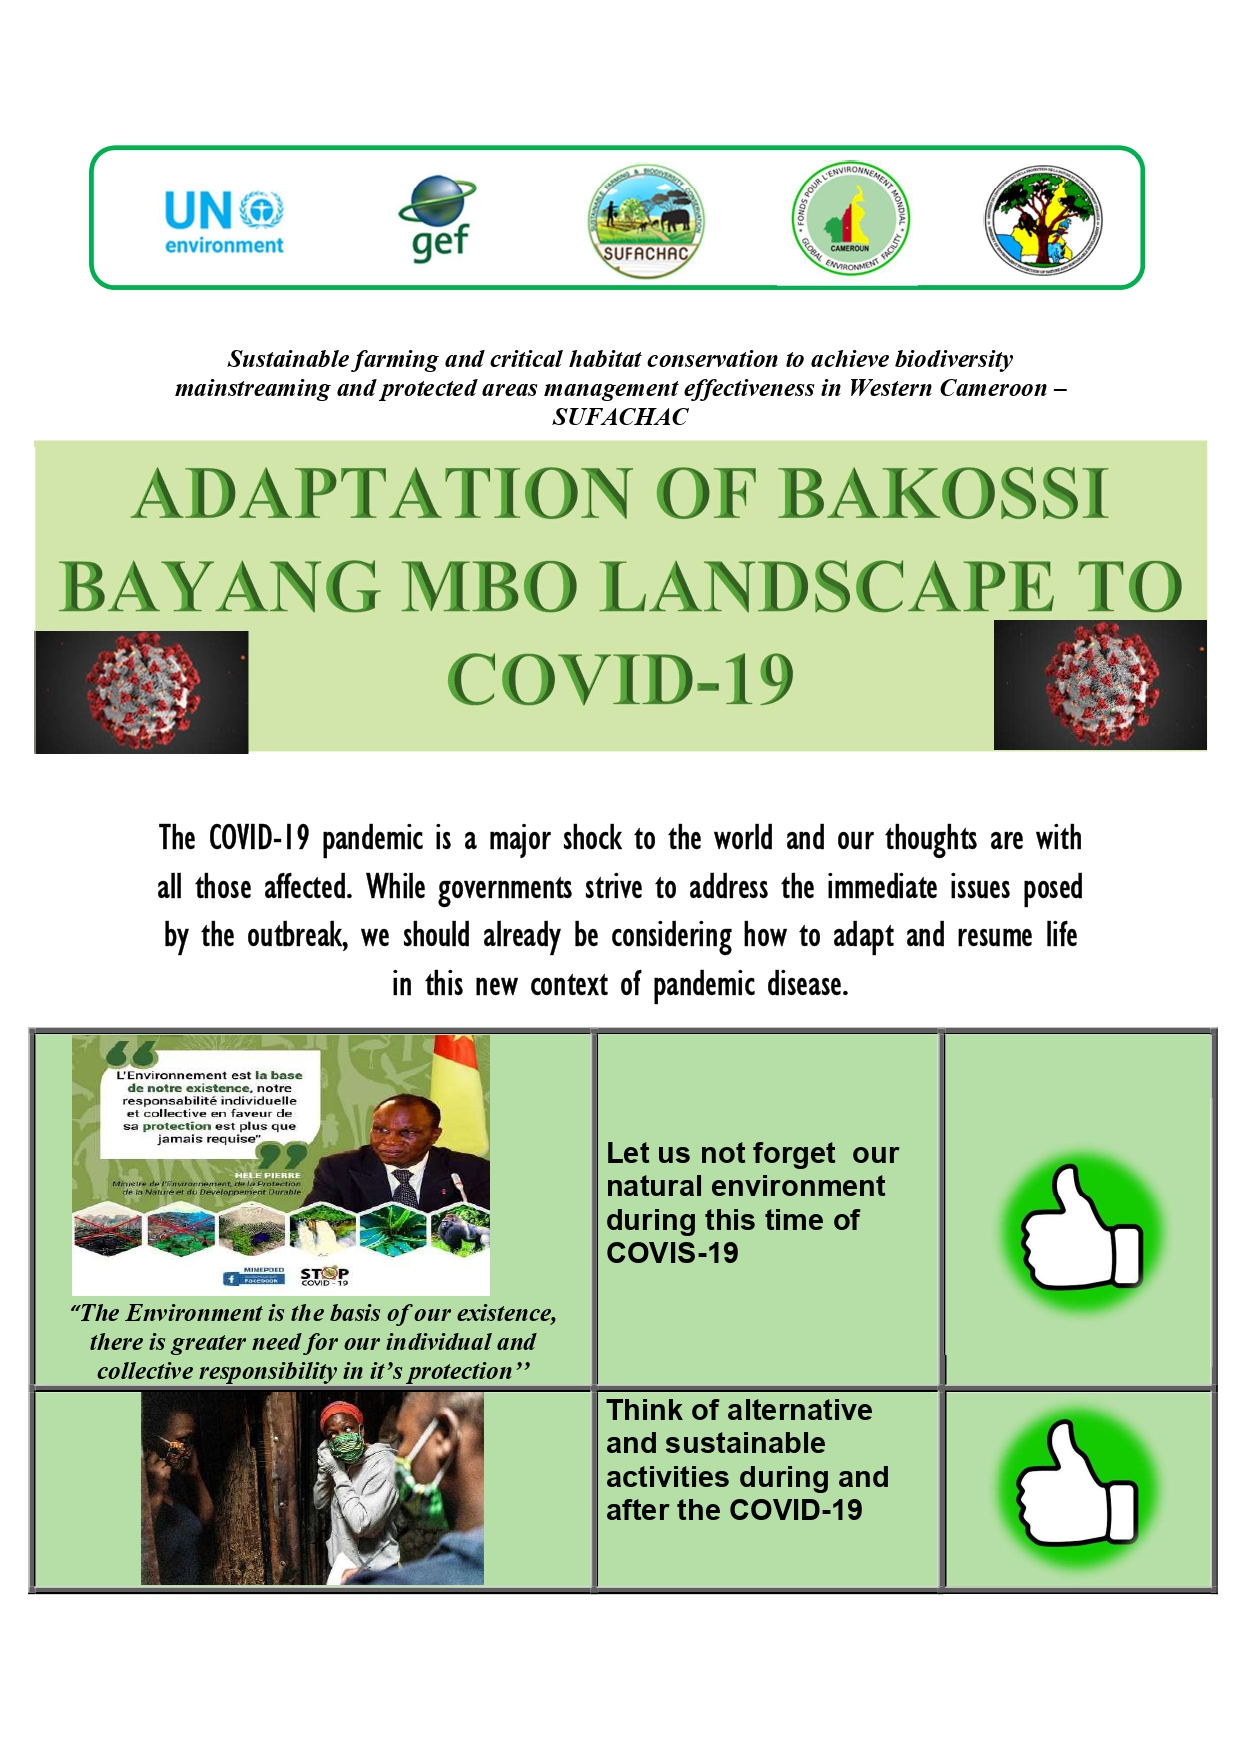 ADAPTATION OF BAKOSSI BAYANG MBO LANDSCAPE TO COVID-19